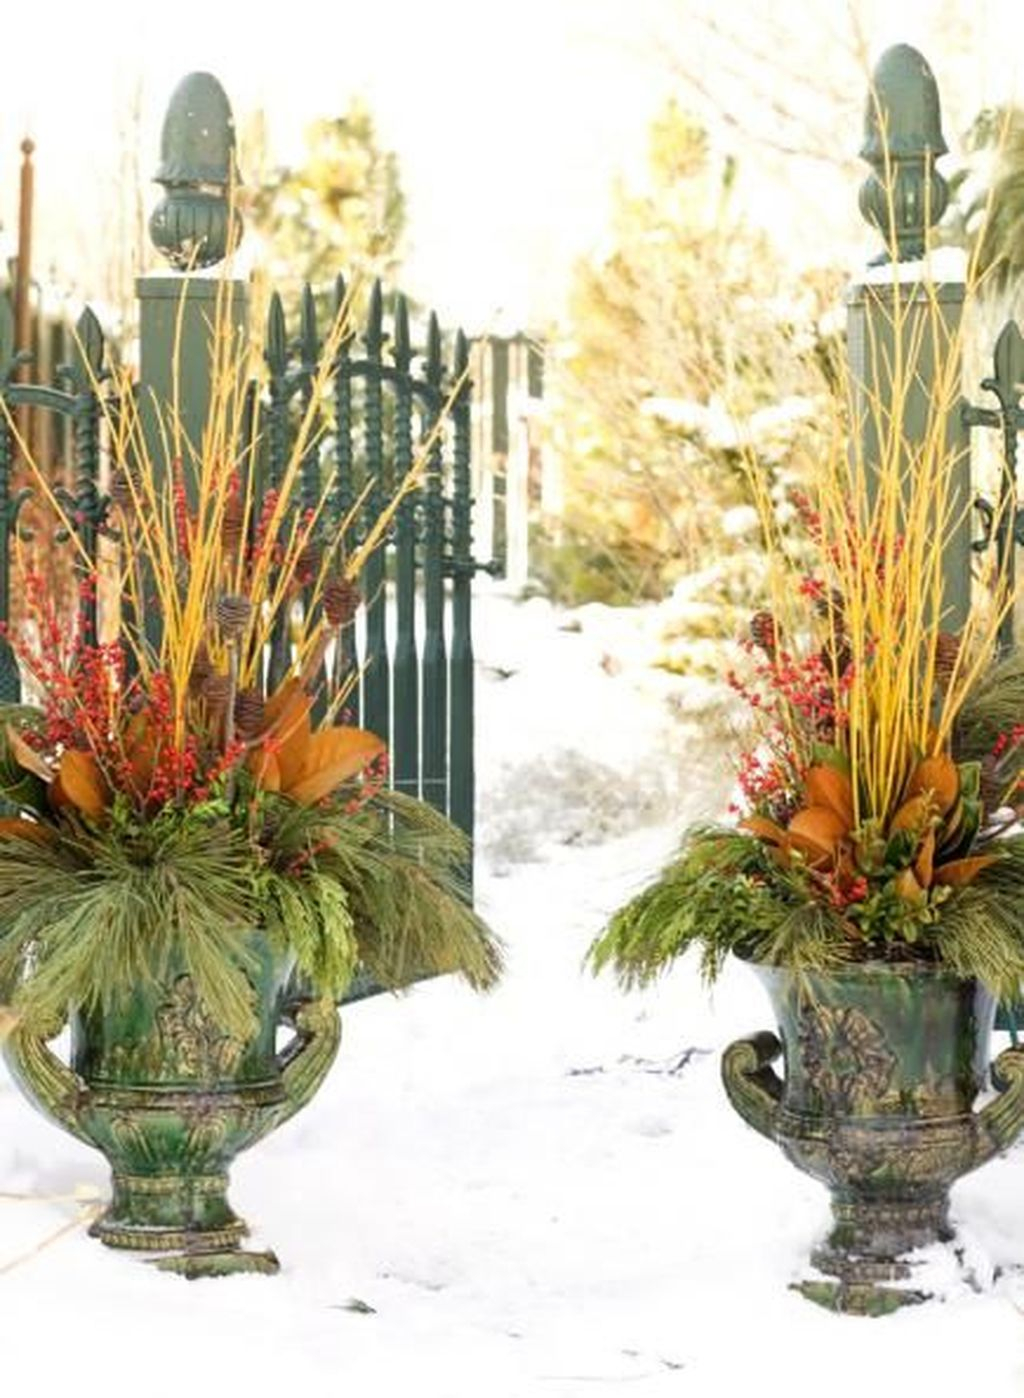 Marvelous Outdoor Holiday Planter Ideas To Beauty Porch Décor 14